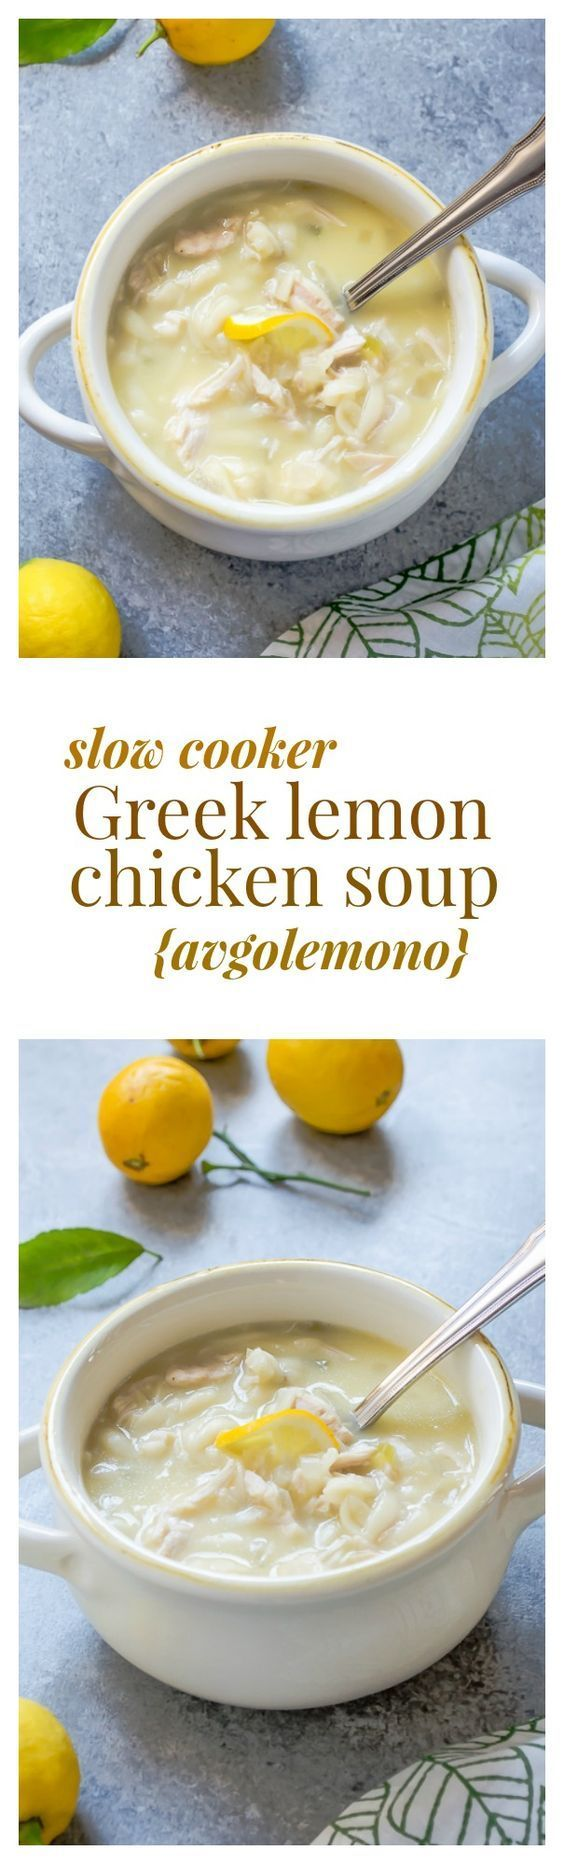 Slow Cooker Greek Lemon Chicken Soup {Avgolemono} takes chicken soup to a whole new level with a rich, creamy egg-lemon broth, and it's made even easier in a slow cooker! @Flavor the Moments